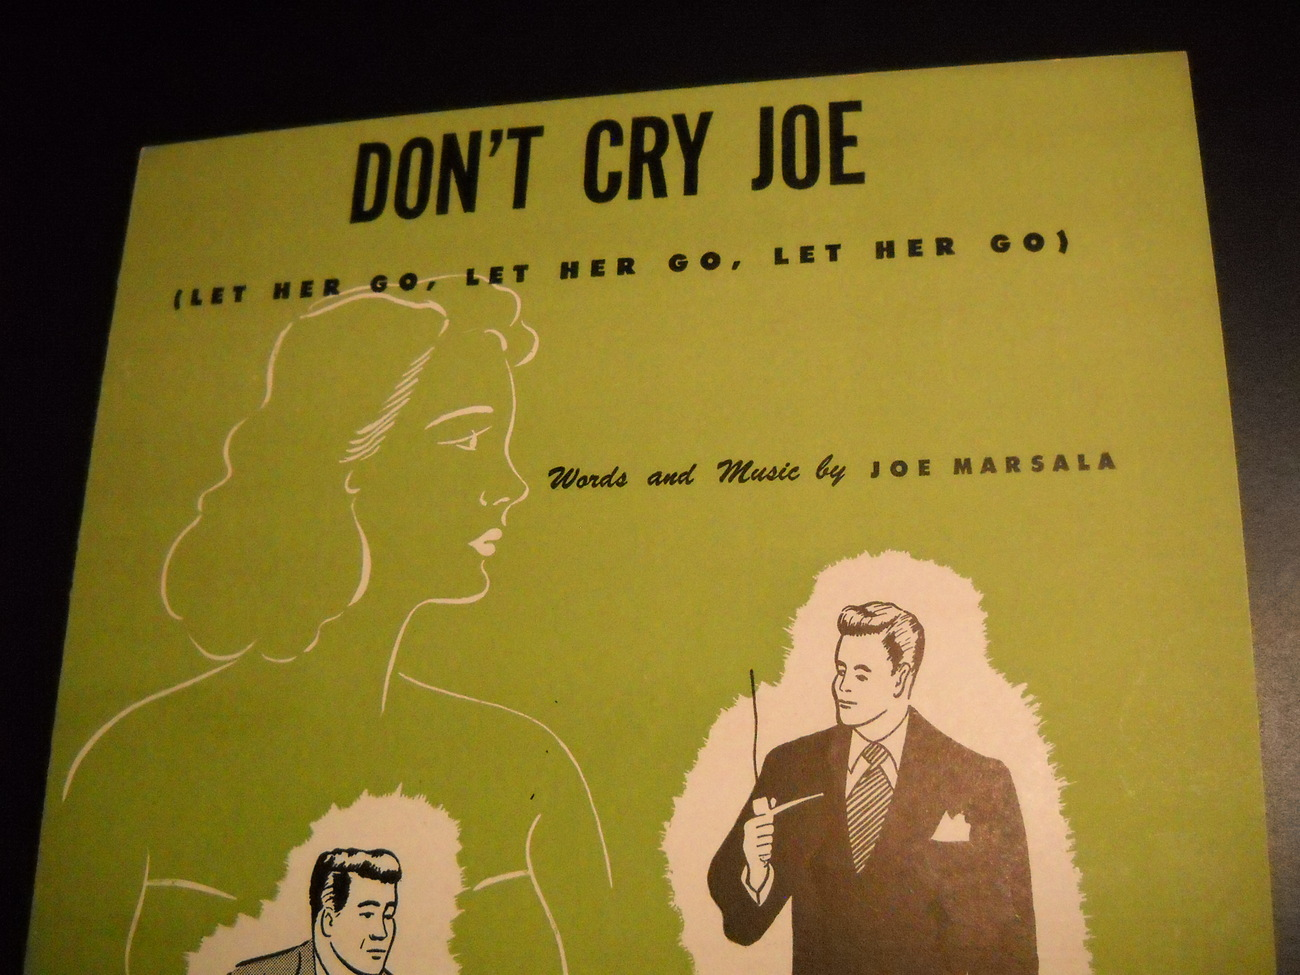 Sheet_music_don_t_cry_joe_let_her_go_let_her_go_let_her_go_1949_harms_music_02